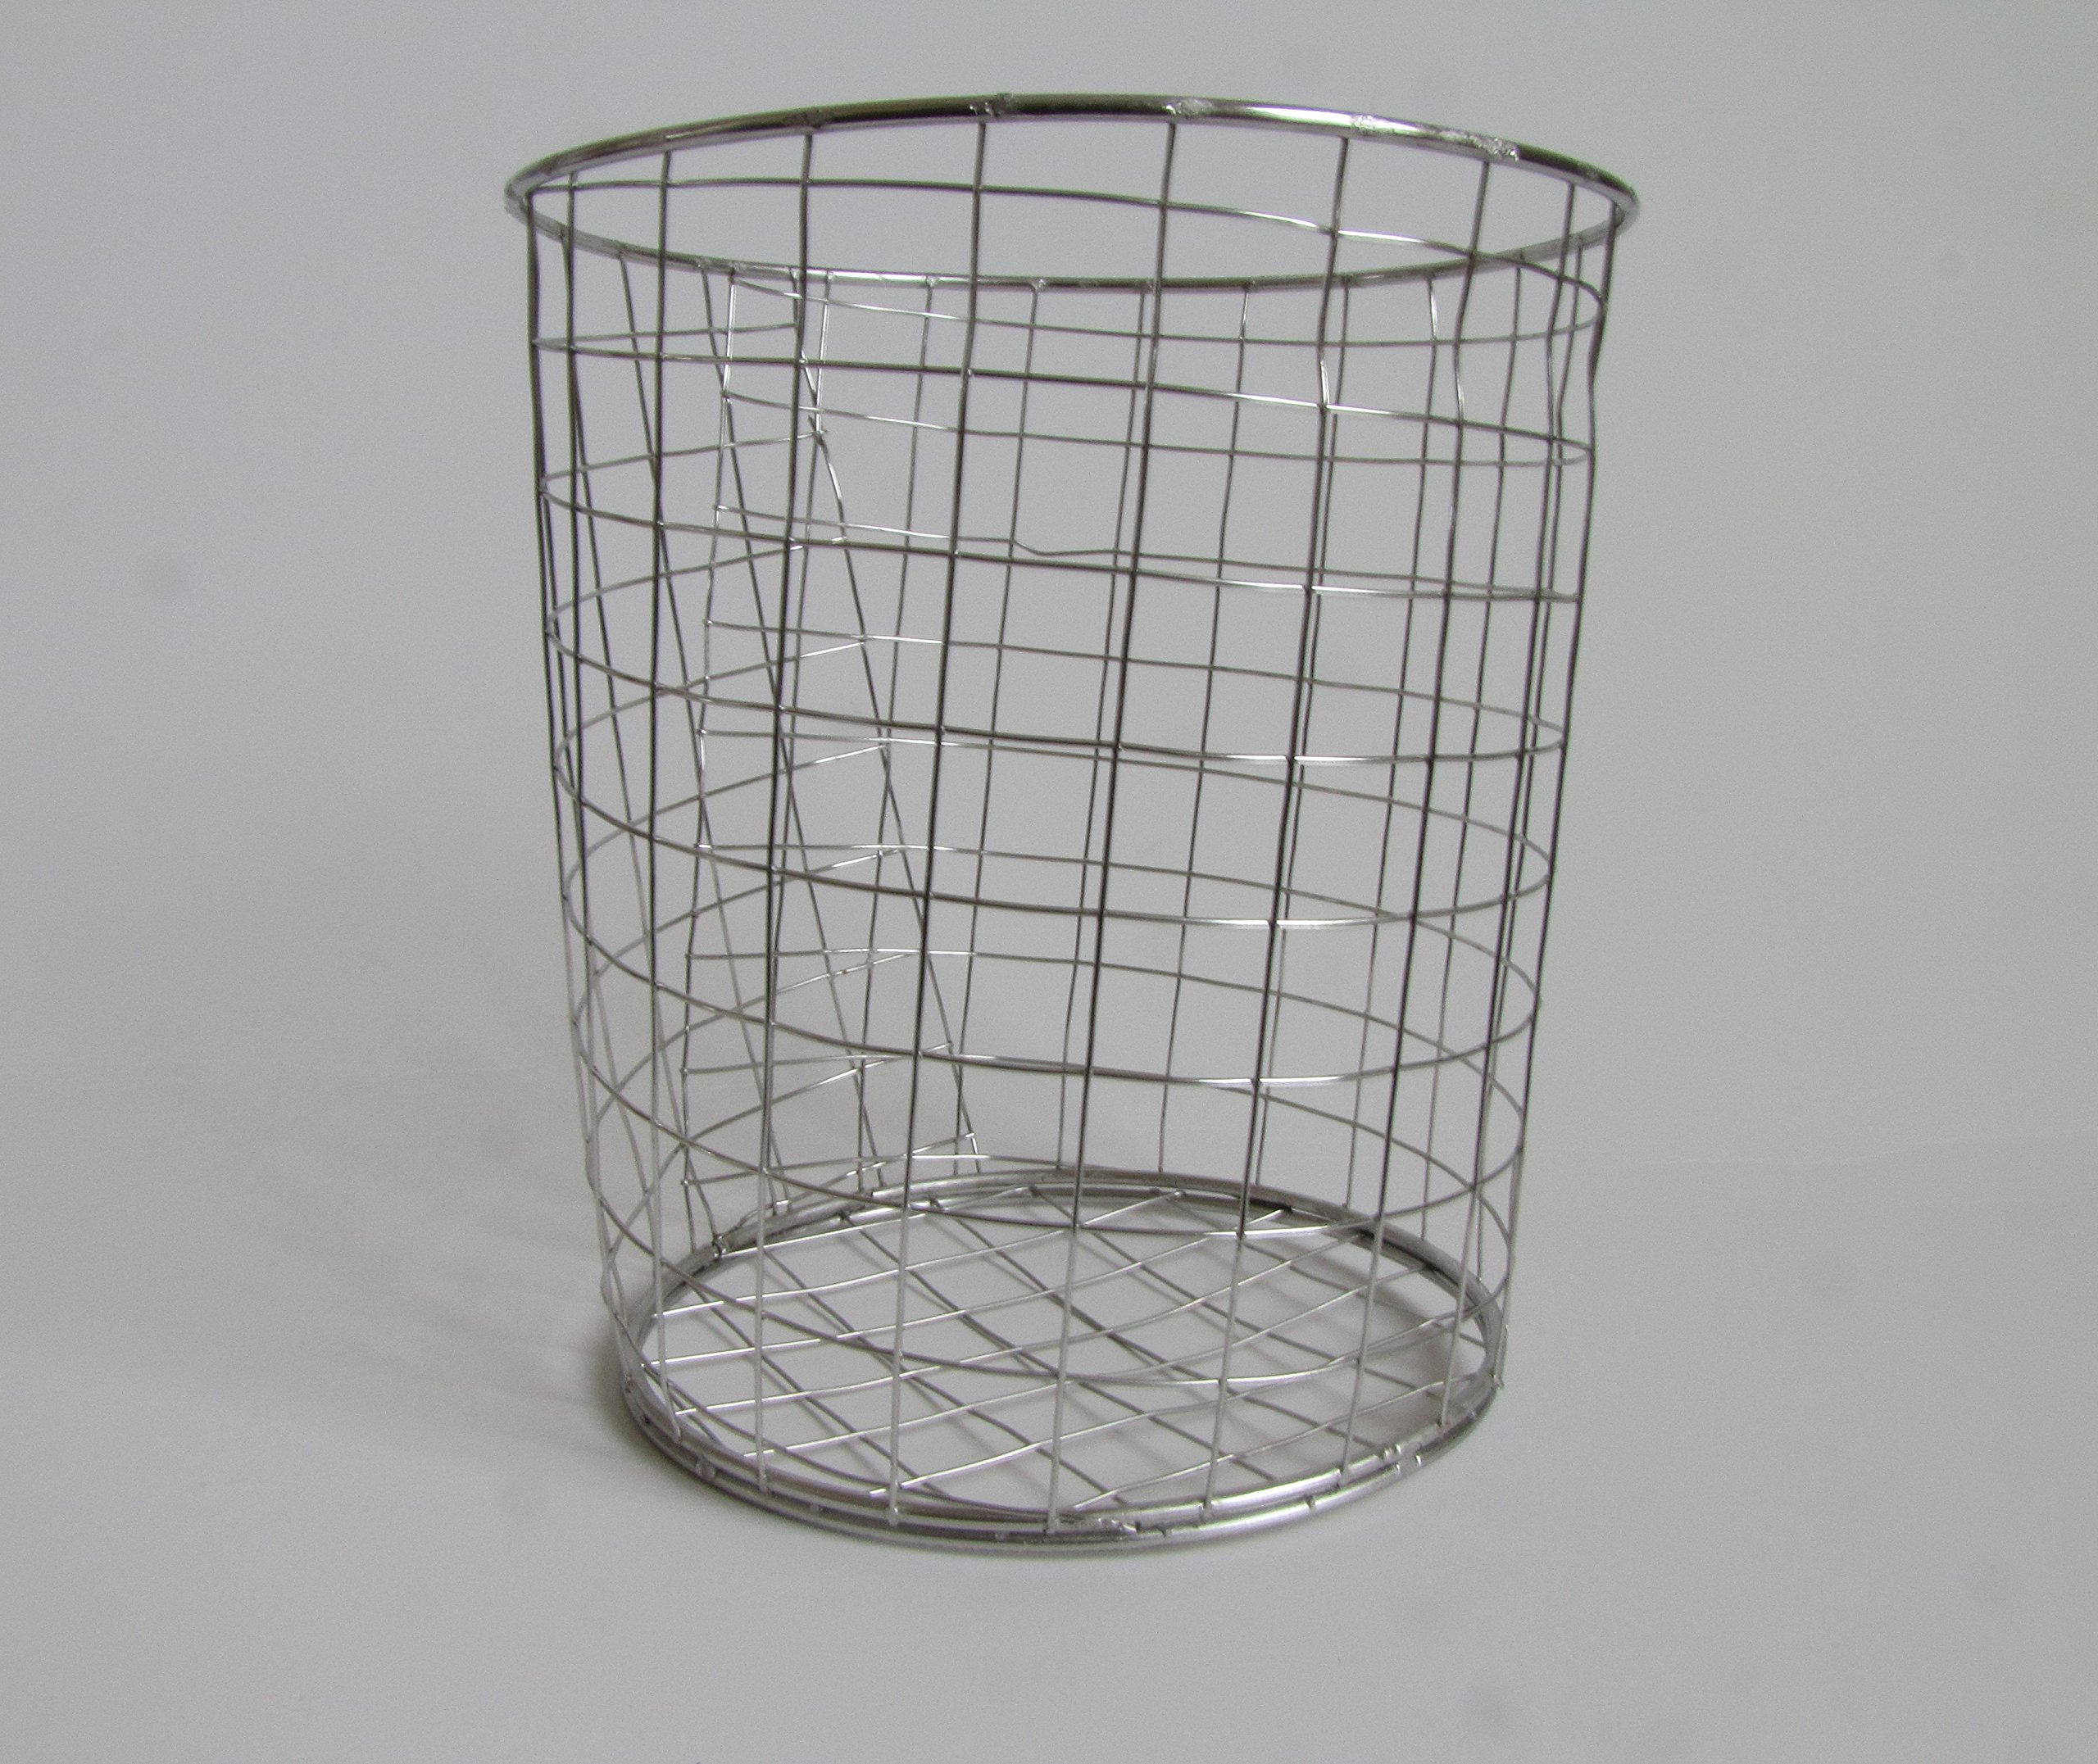 Gophers Limited Stainless Steel Wire Gopher/Mole Barrier Basket, 1 Gallon Size, 1 Case Quantity 6 Baskets